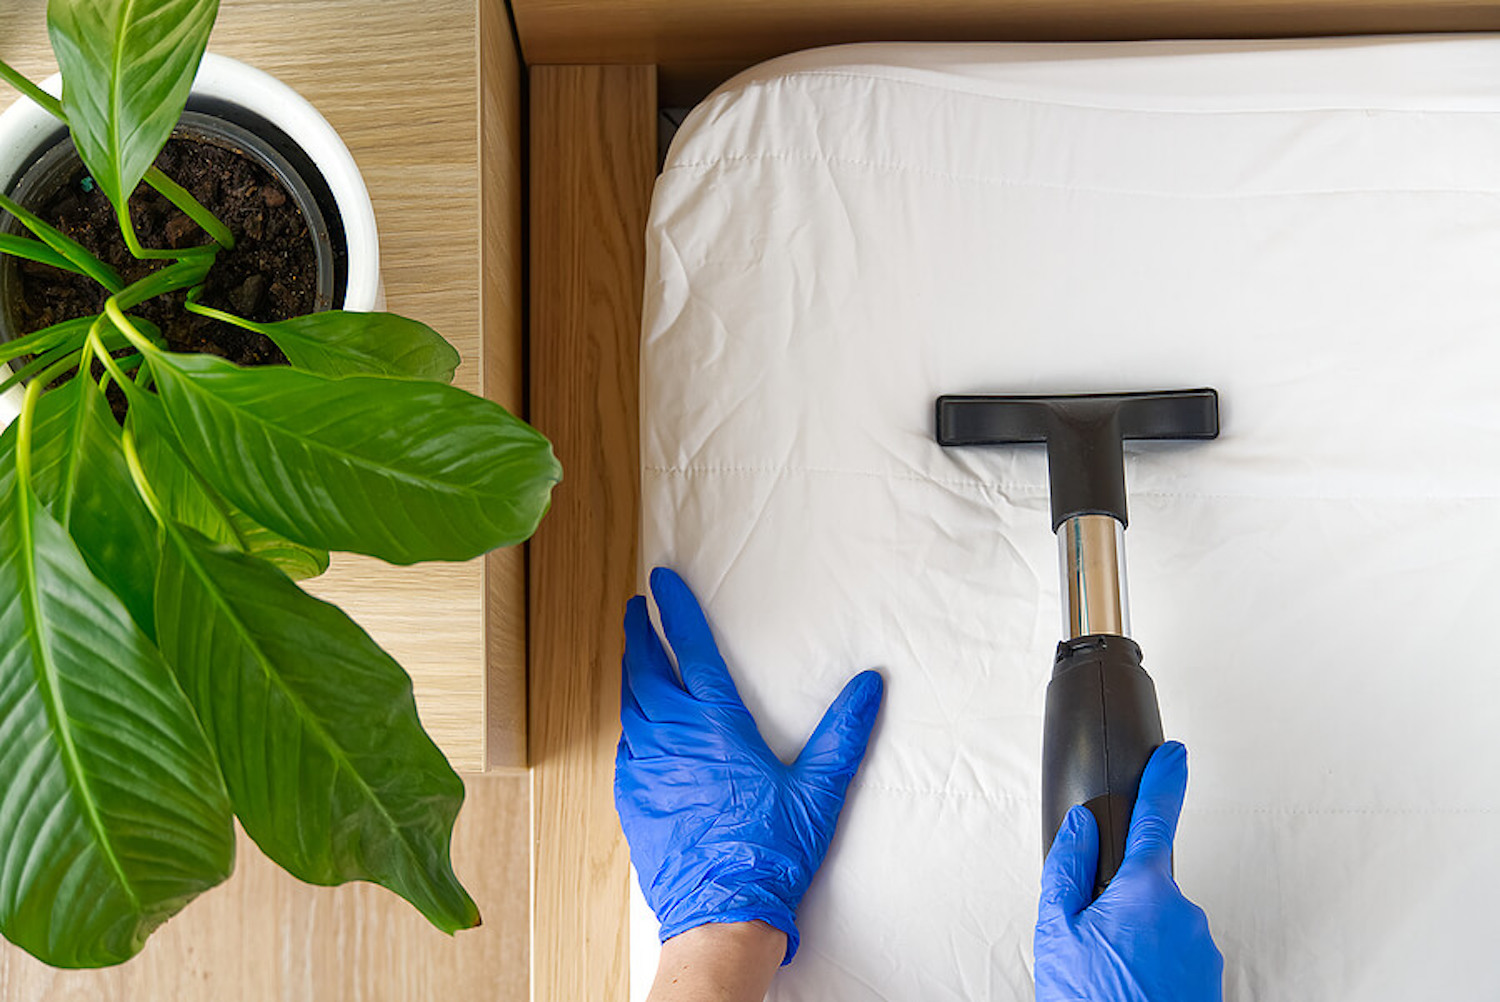 Spring cleaning image includes blue rubber gloves, vacuum and leafy houseplant.